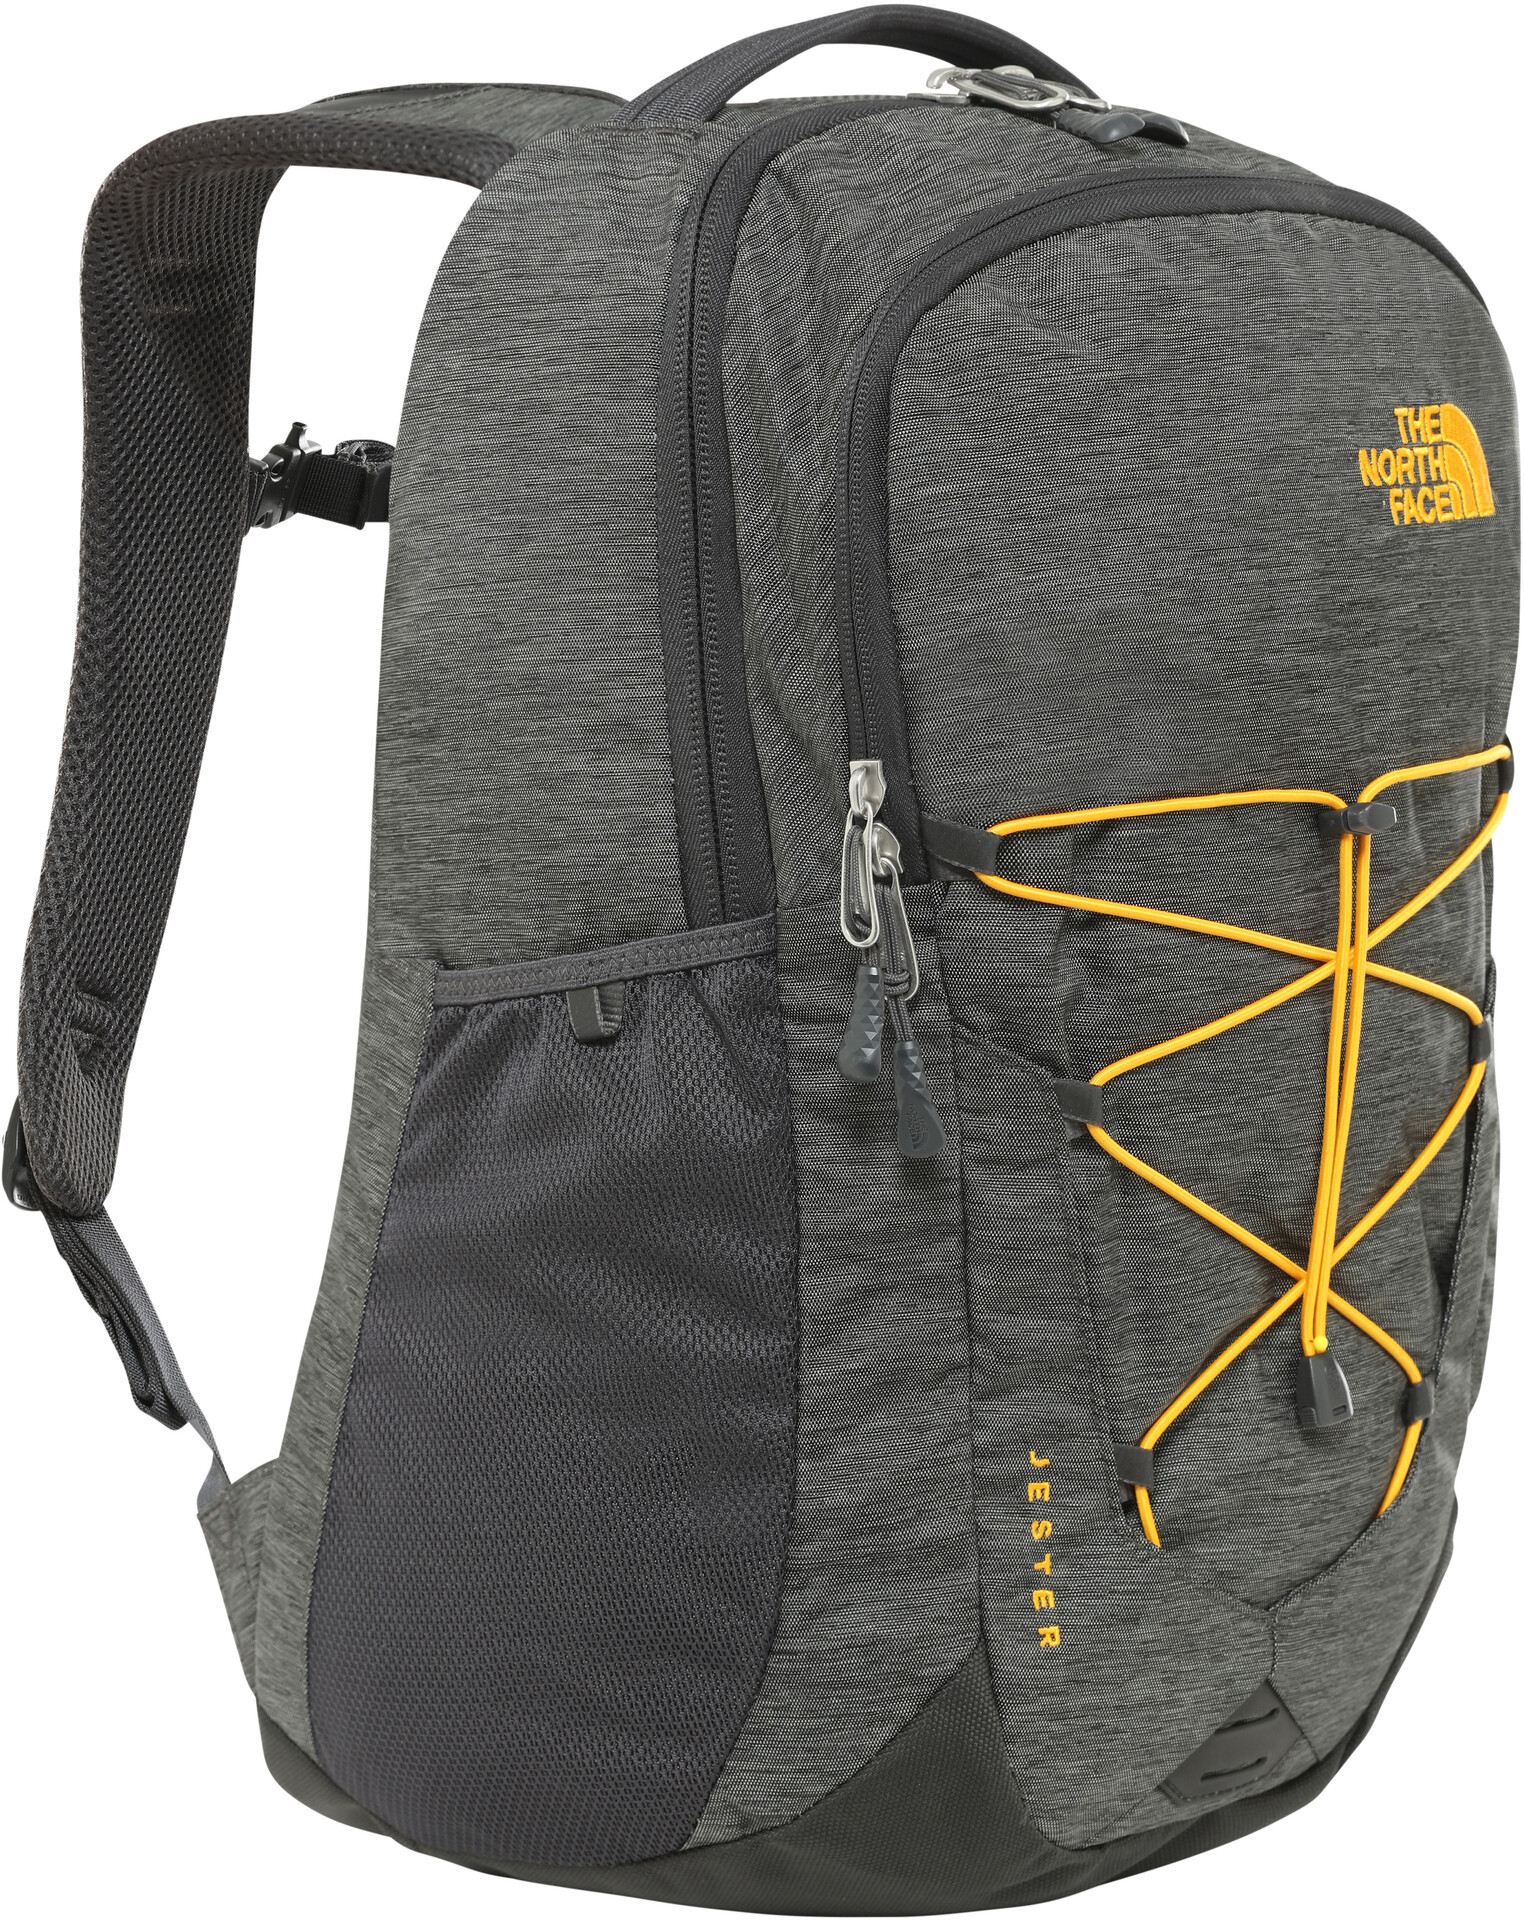 North The Face Jester Mochila Gris EHD92I